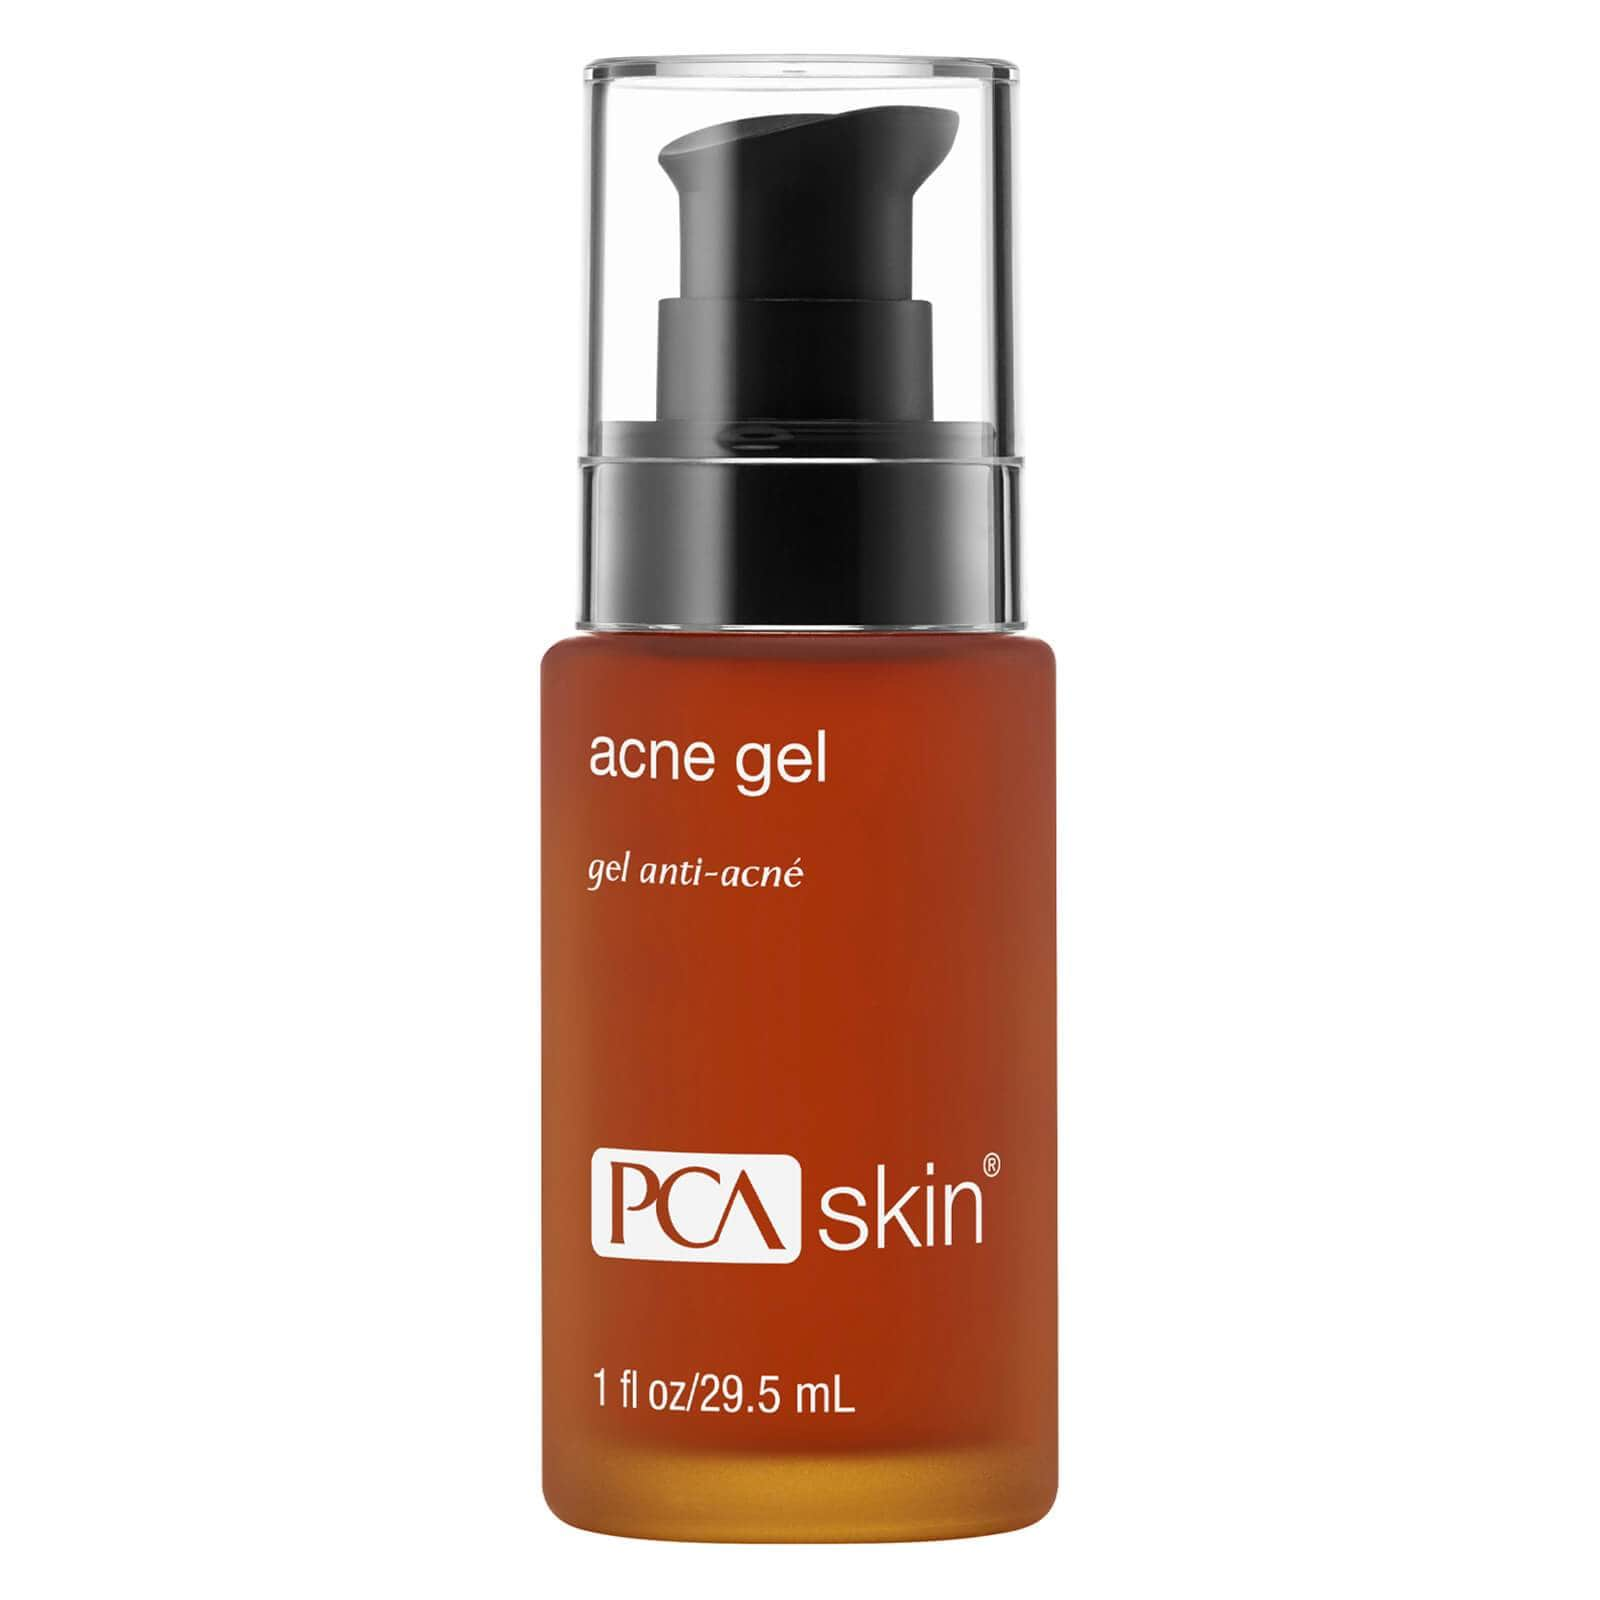 PCA SKIN Acne Gel 1 oz.